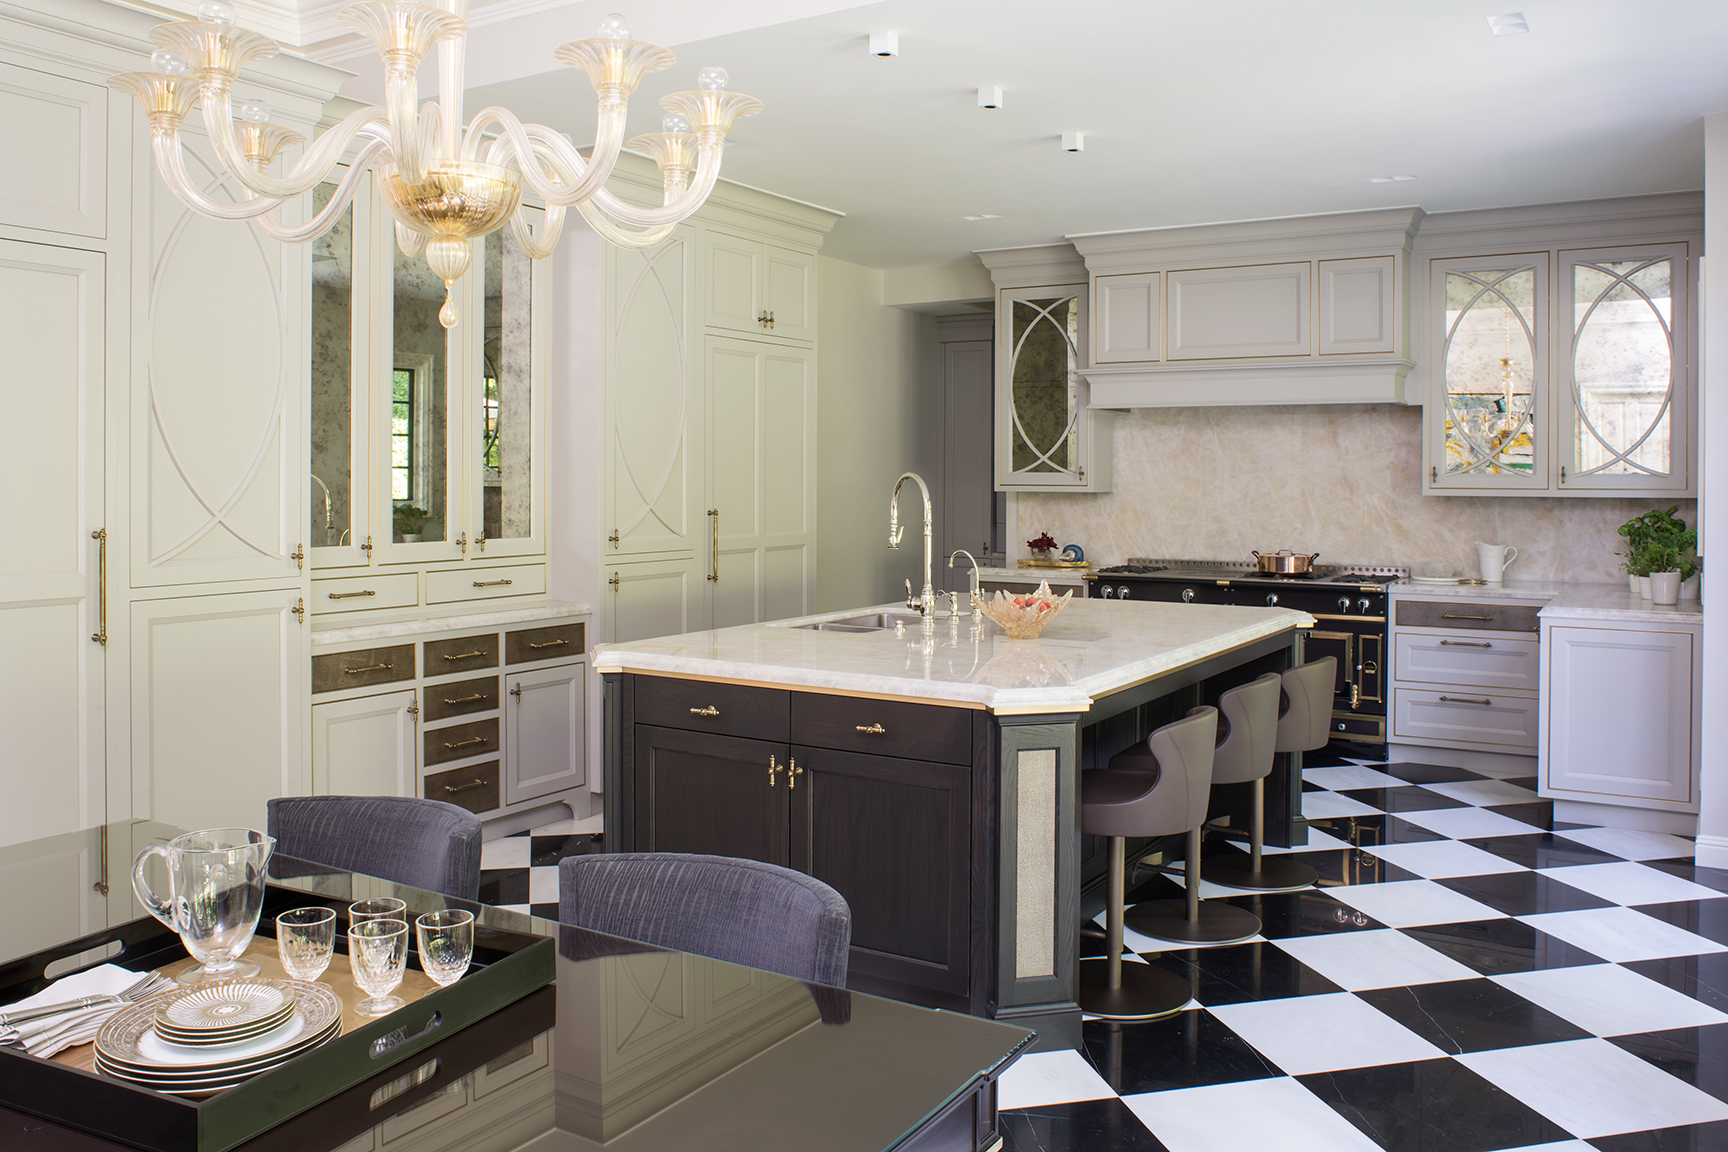 3_CooperPacific_BelAir_C_KitchenOverall_V1_WEB.jpg